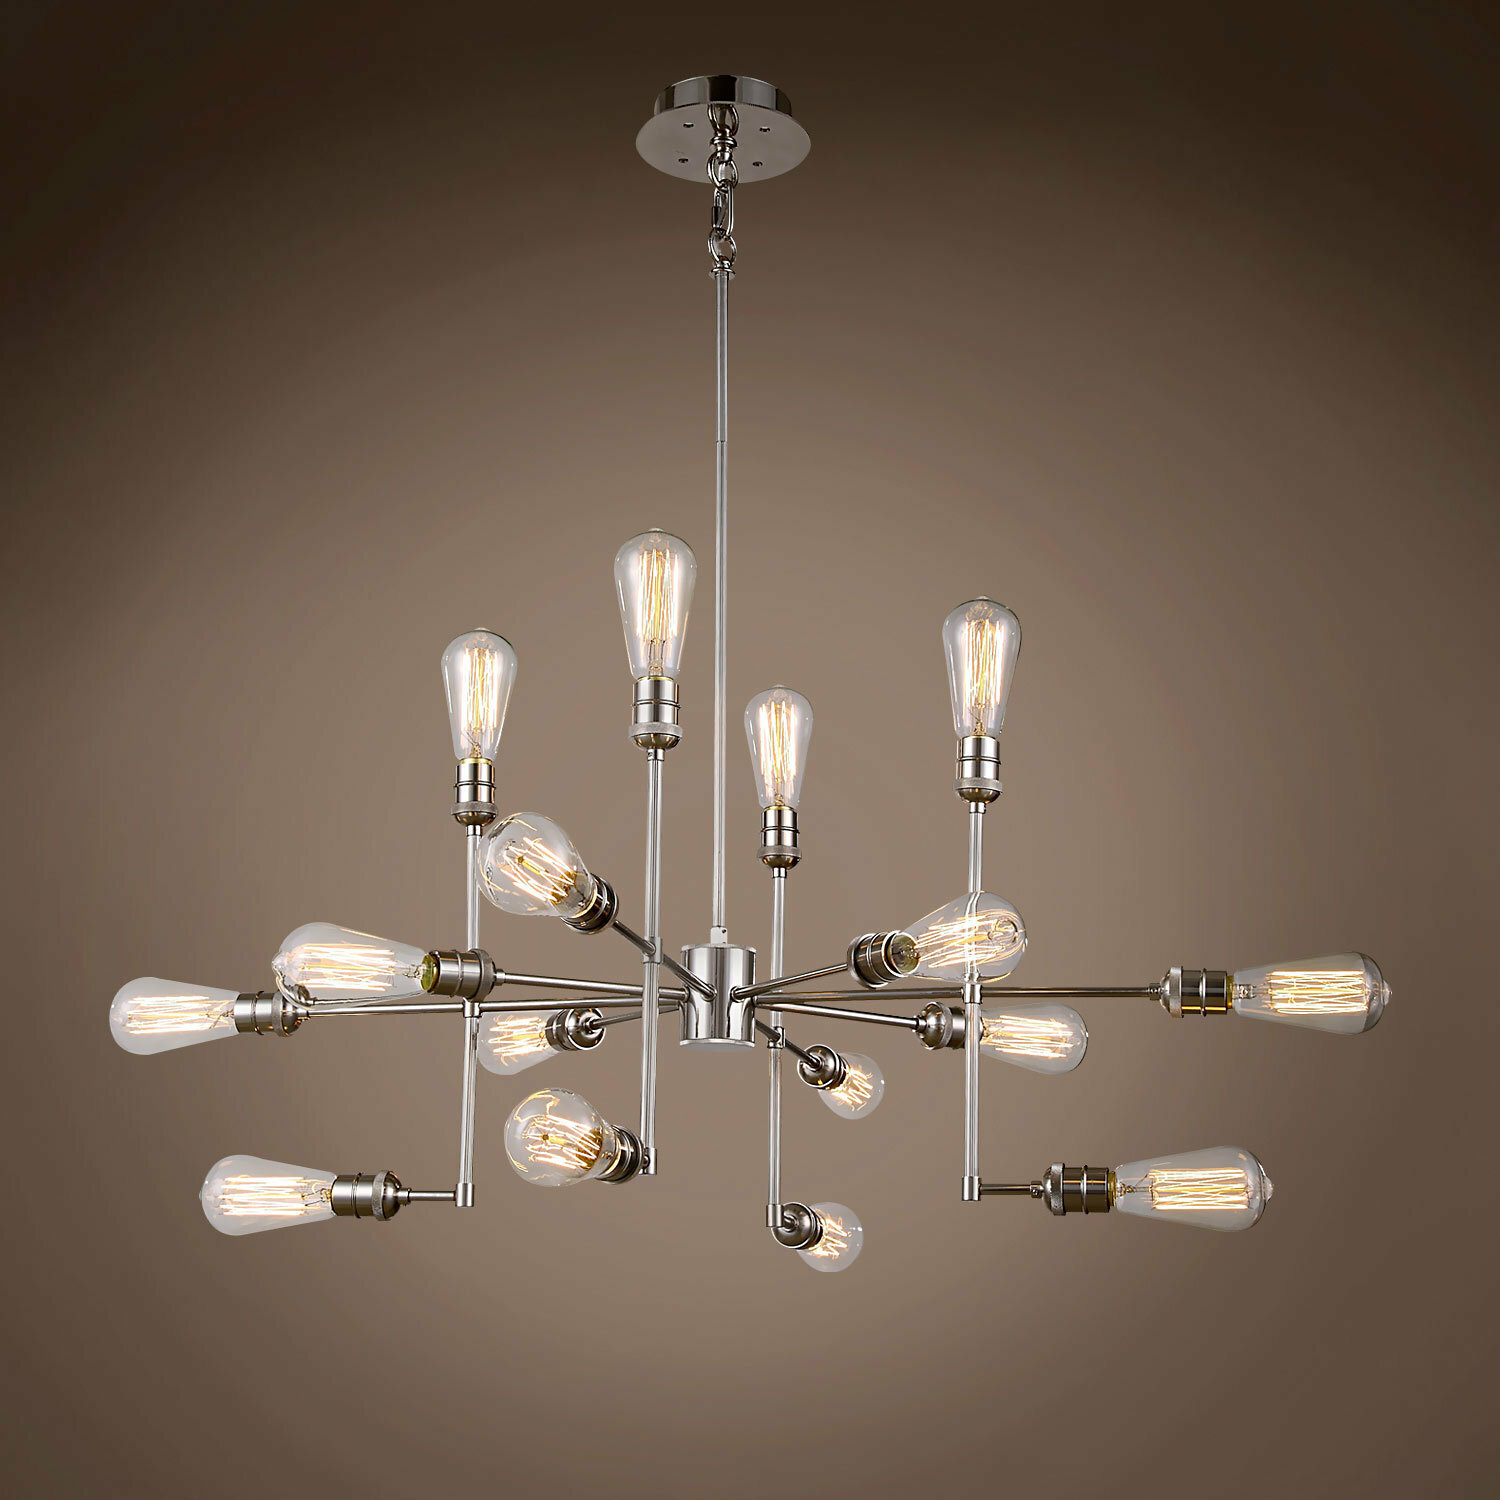 Williston Forge Morillo 15 Light Sputnik Modern Linear Chandelier Wayfair